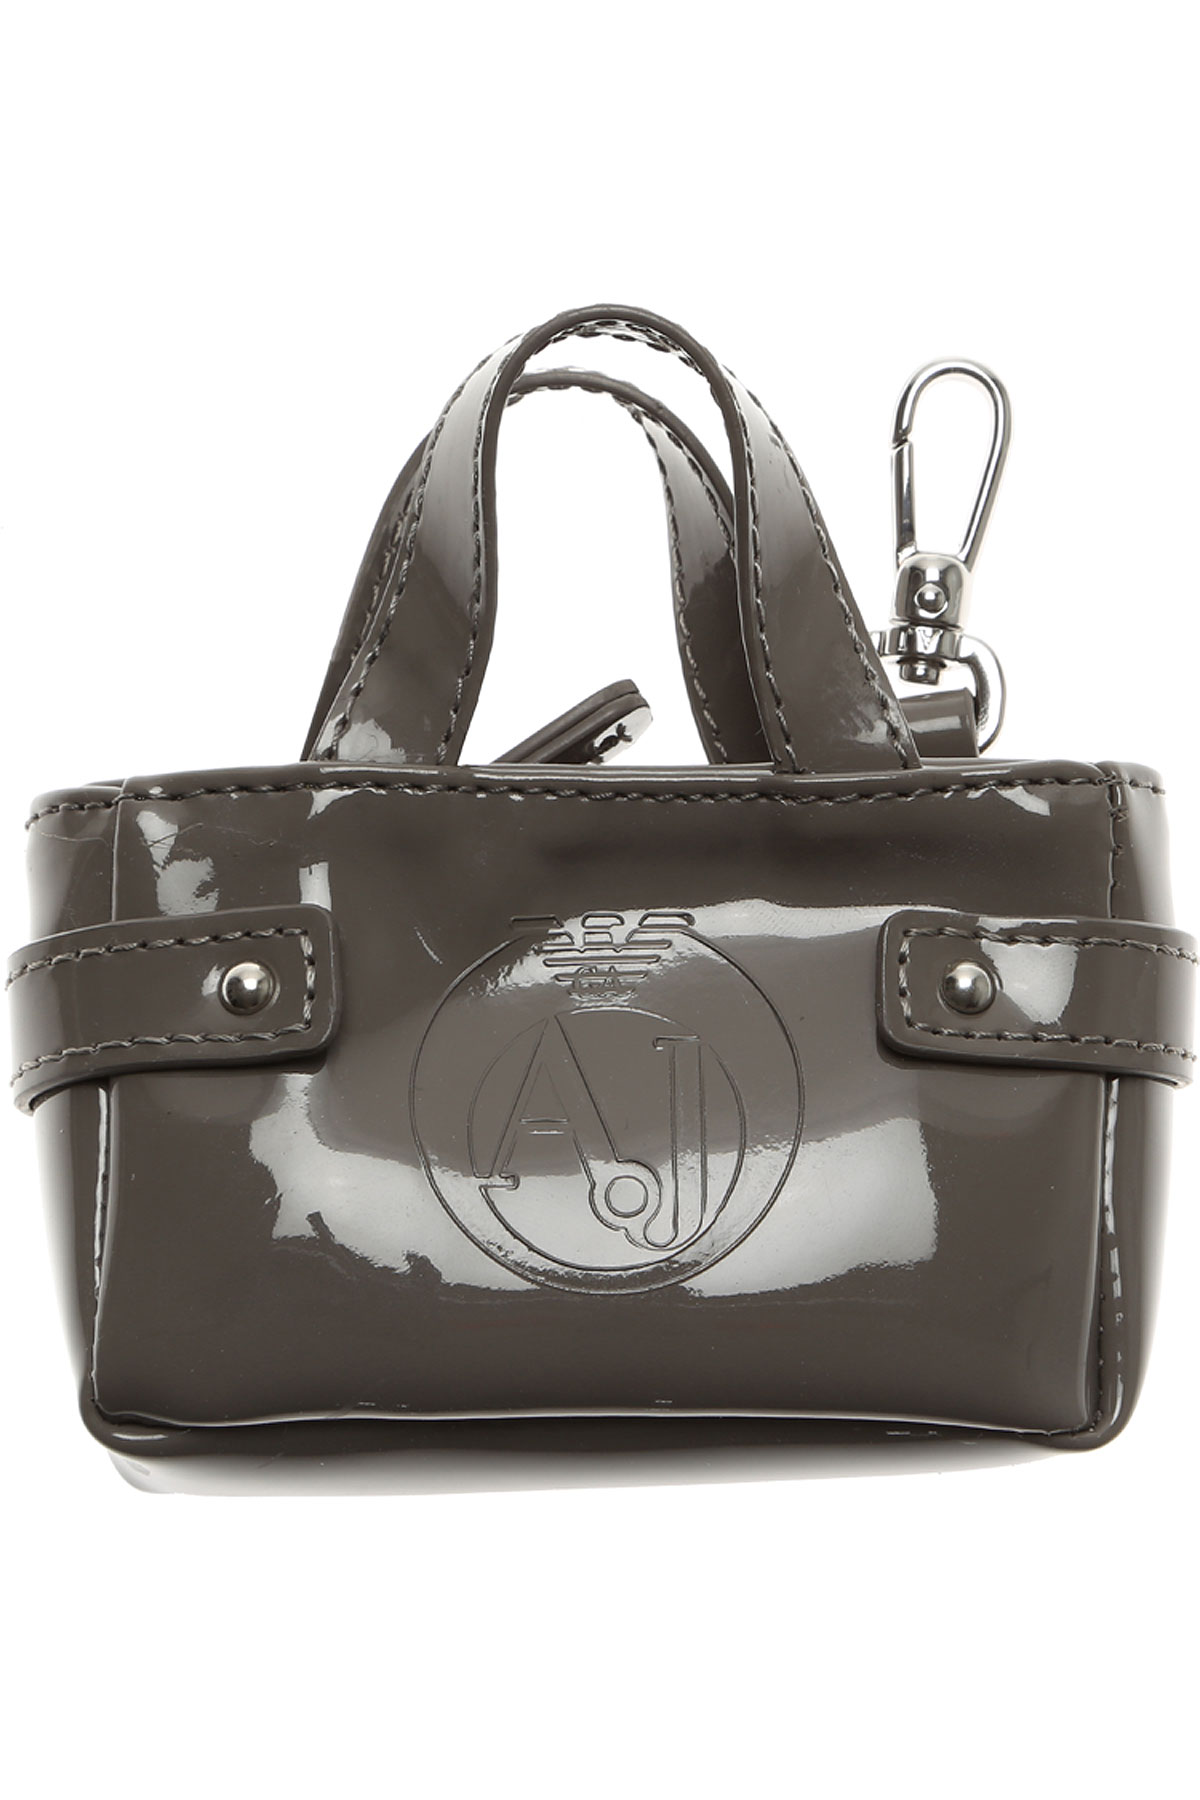 Image of Armani Jeans Key Chain for Women, Key Ring On Sale in Outlet, Taupe, PVC, 2017